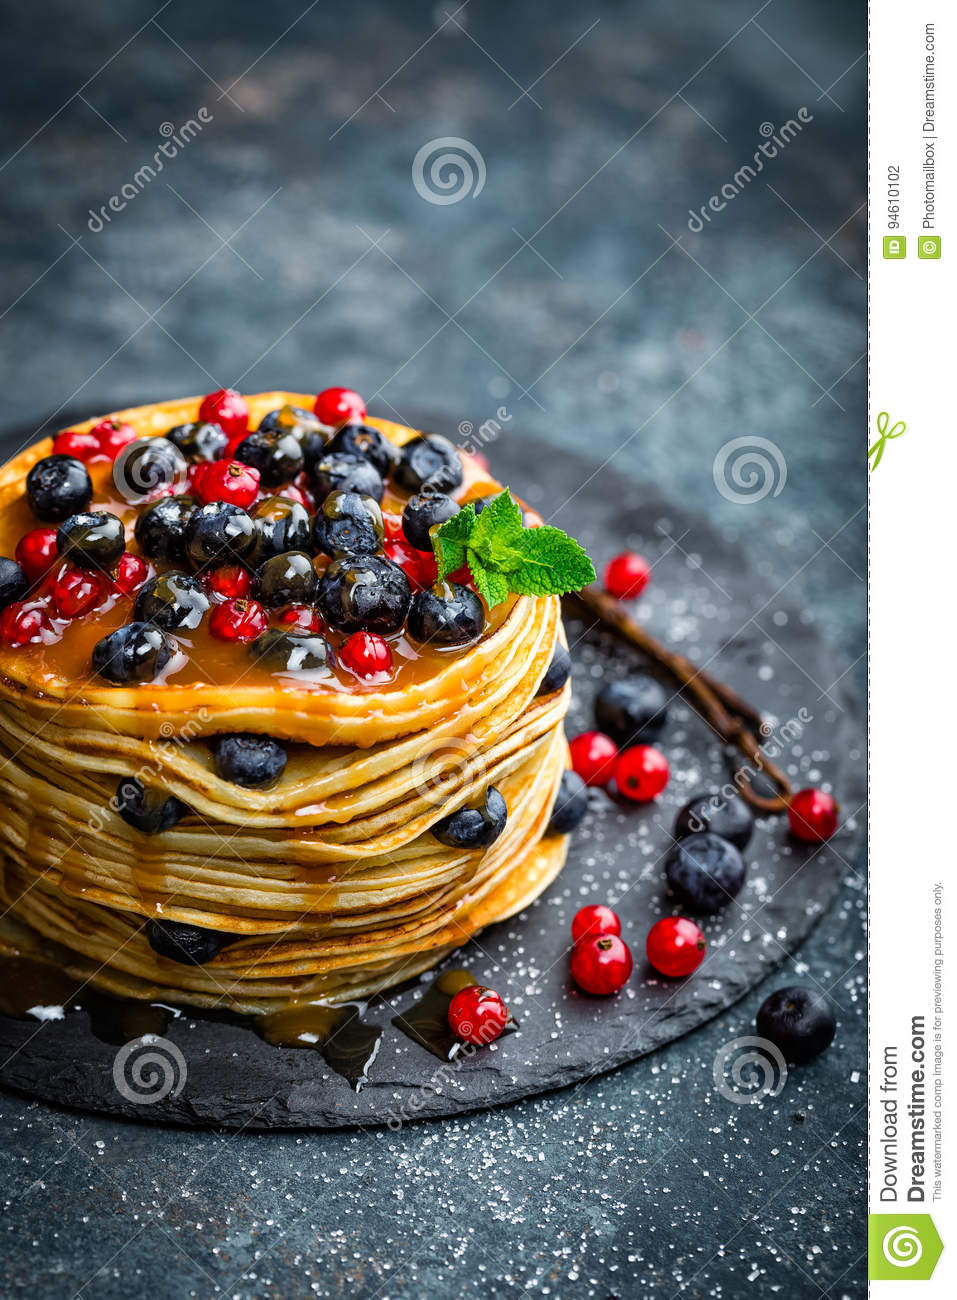 Pancakes with fresh berries and maple syrup on dark background